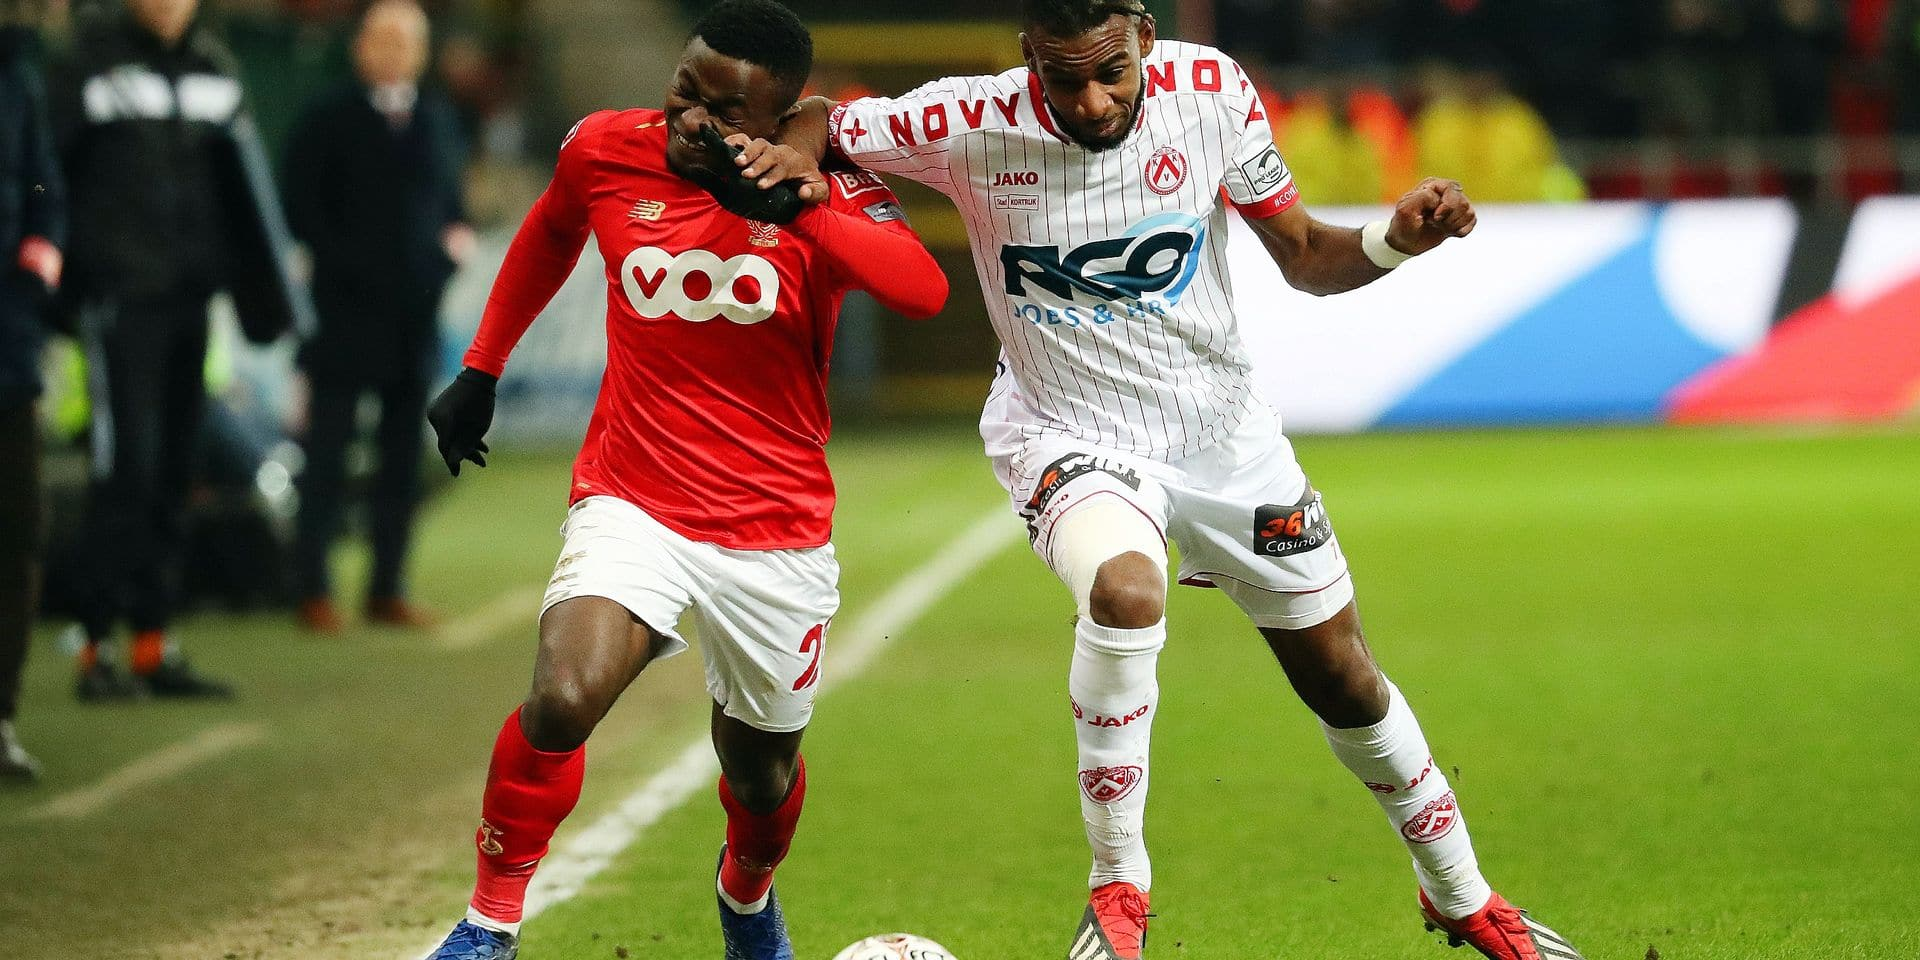 Standard's Collins Fai and Kortrijk's Ilombe 'Petit Pele' Mboyo fight for the ball during a soccer match between Standard de Liege and KV Kortrijk, Saturday 19 January 2019 in Liege, on day 22 of the 'Jupiler Pro League' Belgian soccer championship season 2018-2019. BELGA PHOTO VIRGINIE LEFOUR